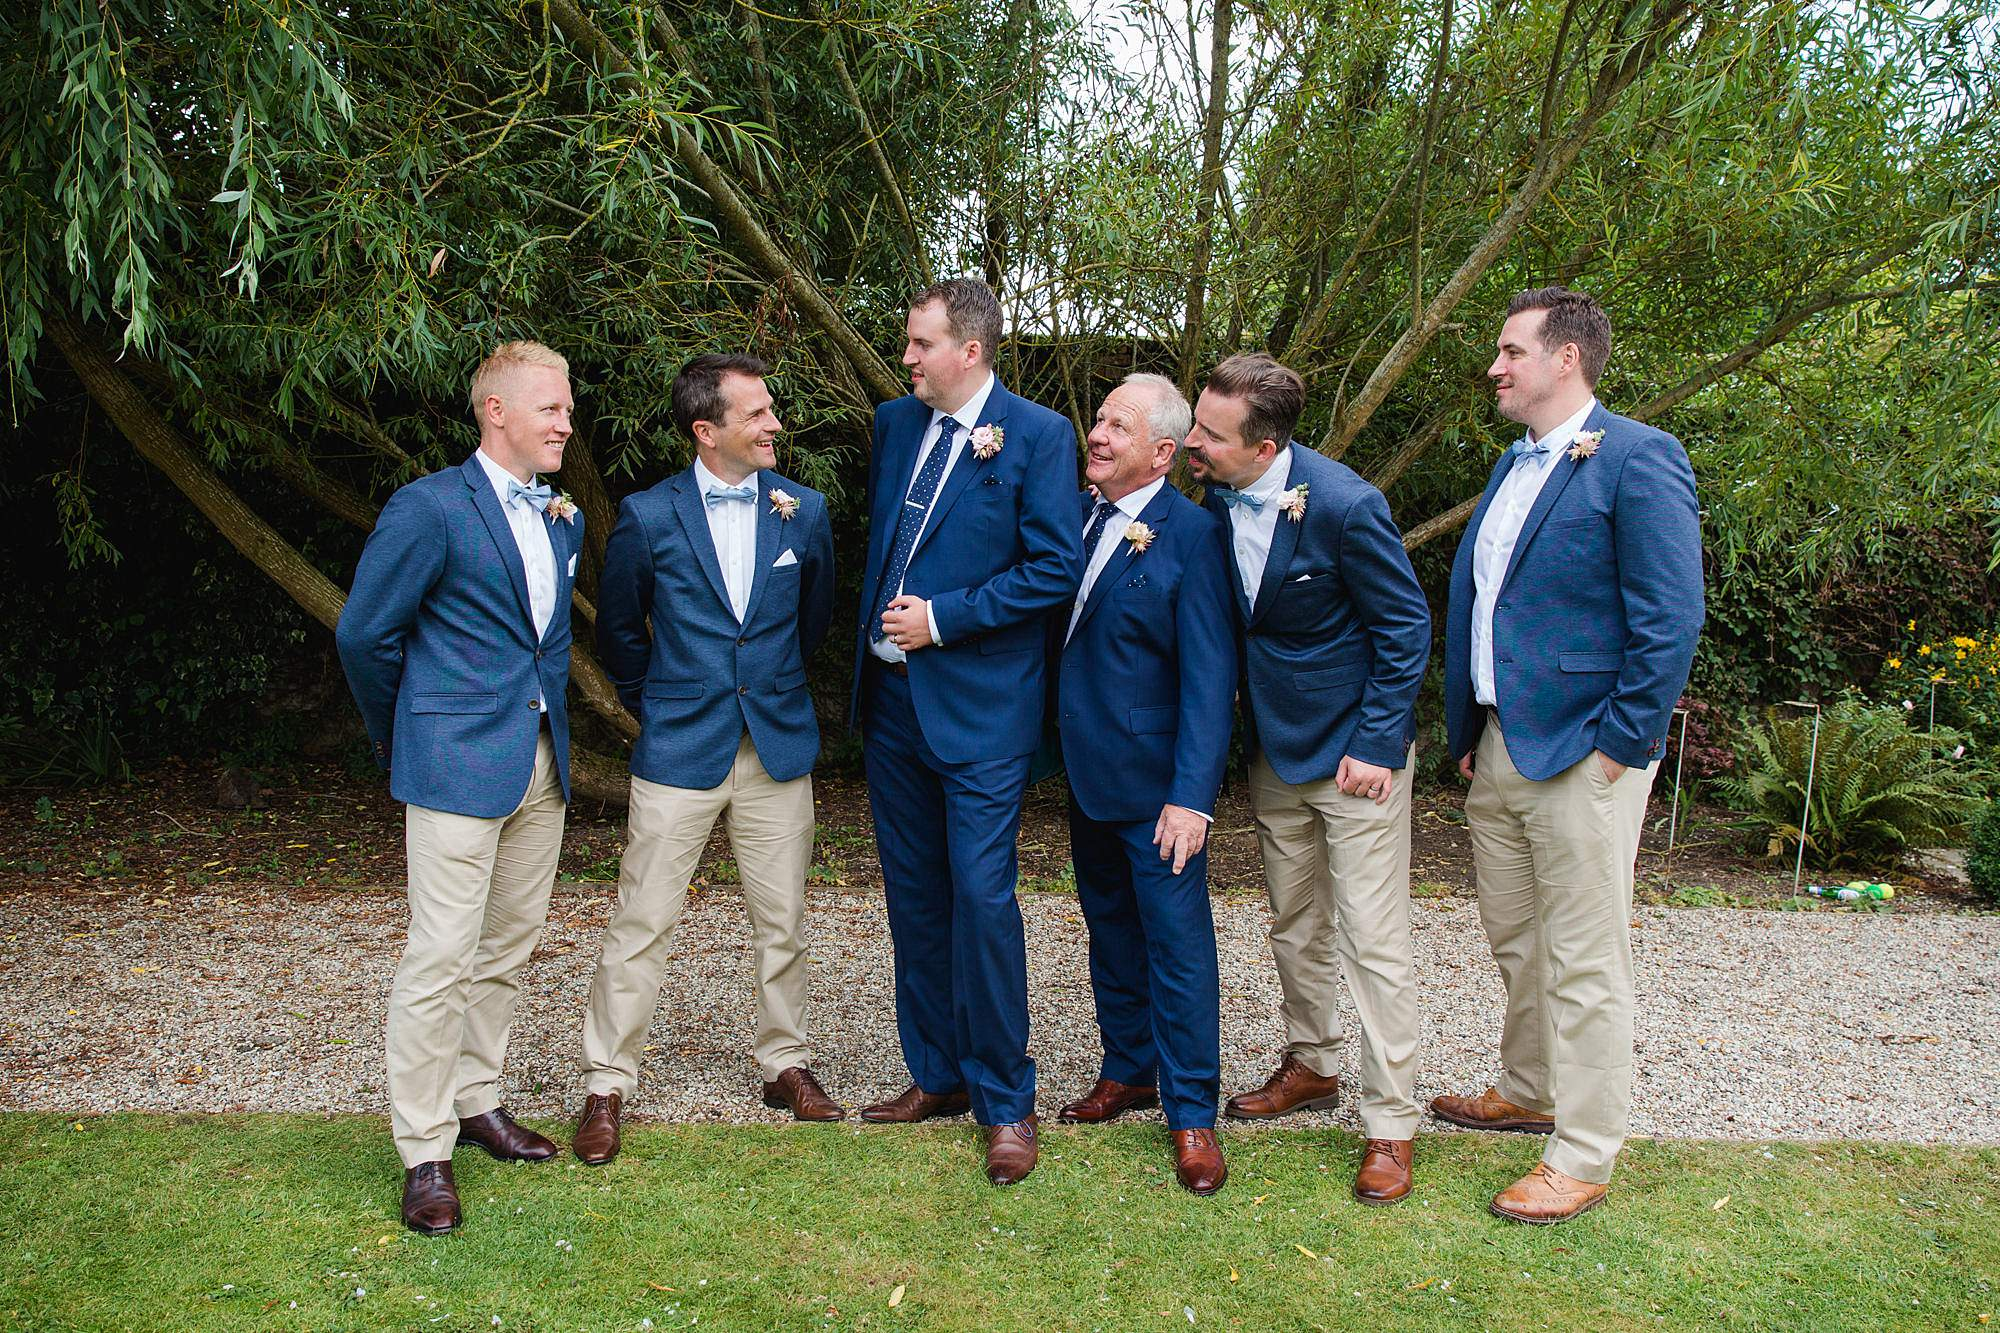 fun outdoor wedding groom laughing his his groomsmen